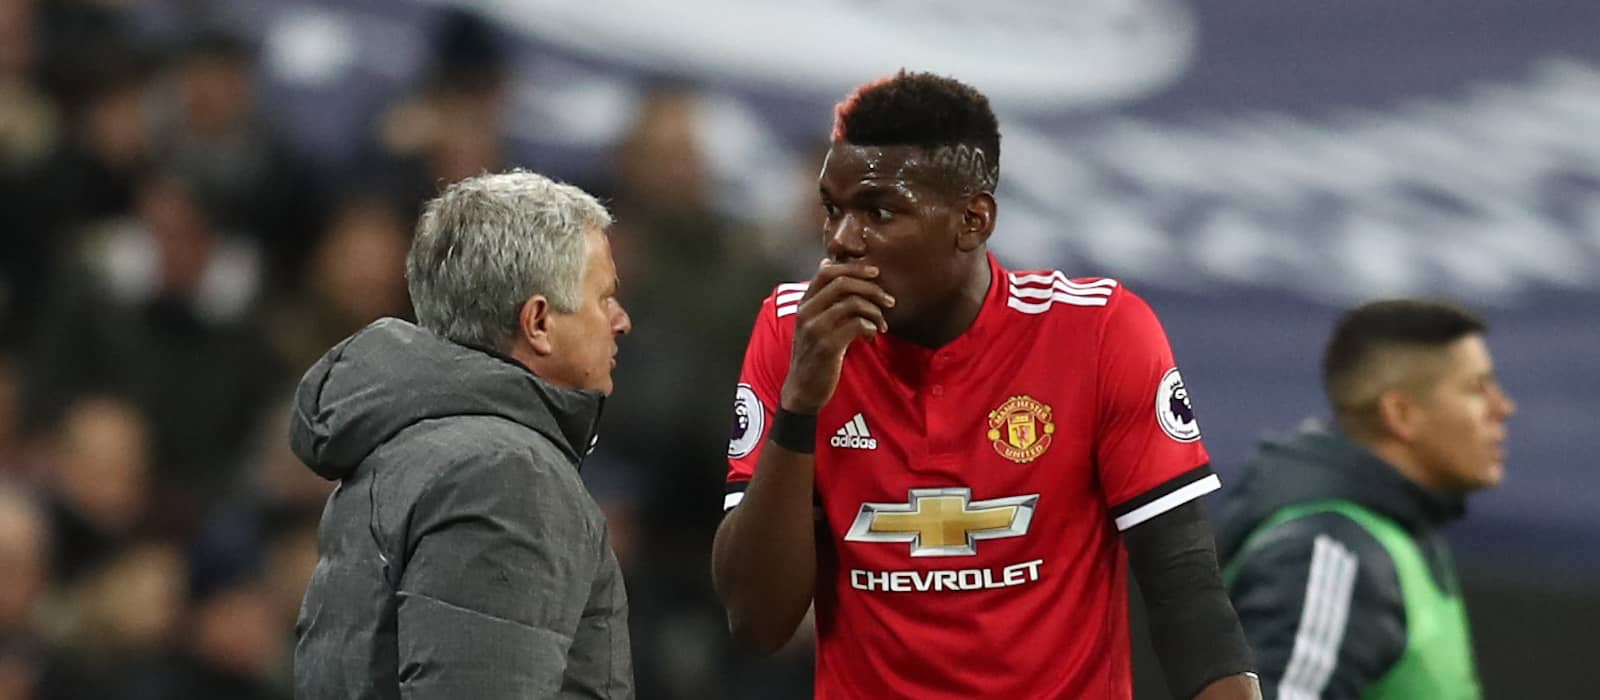 Jason Burt believes stand-off between Paul Pogba and Jose Mourinho could develop at Manchester United